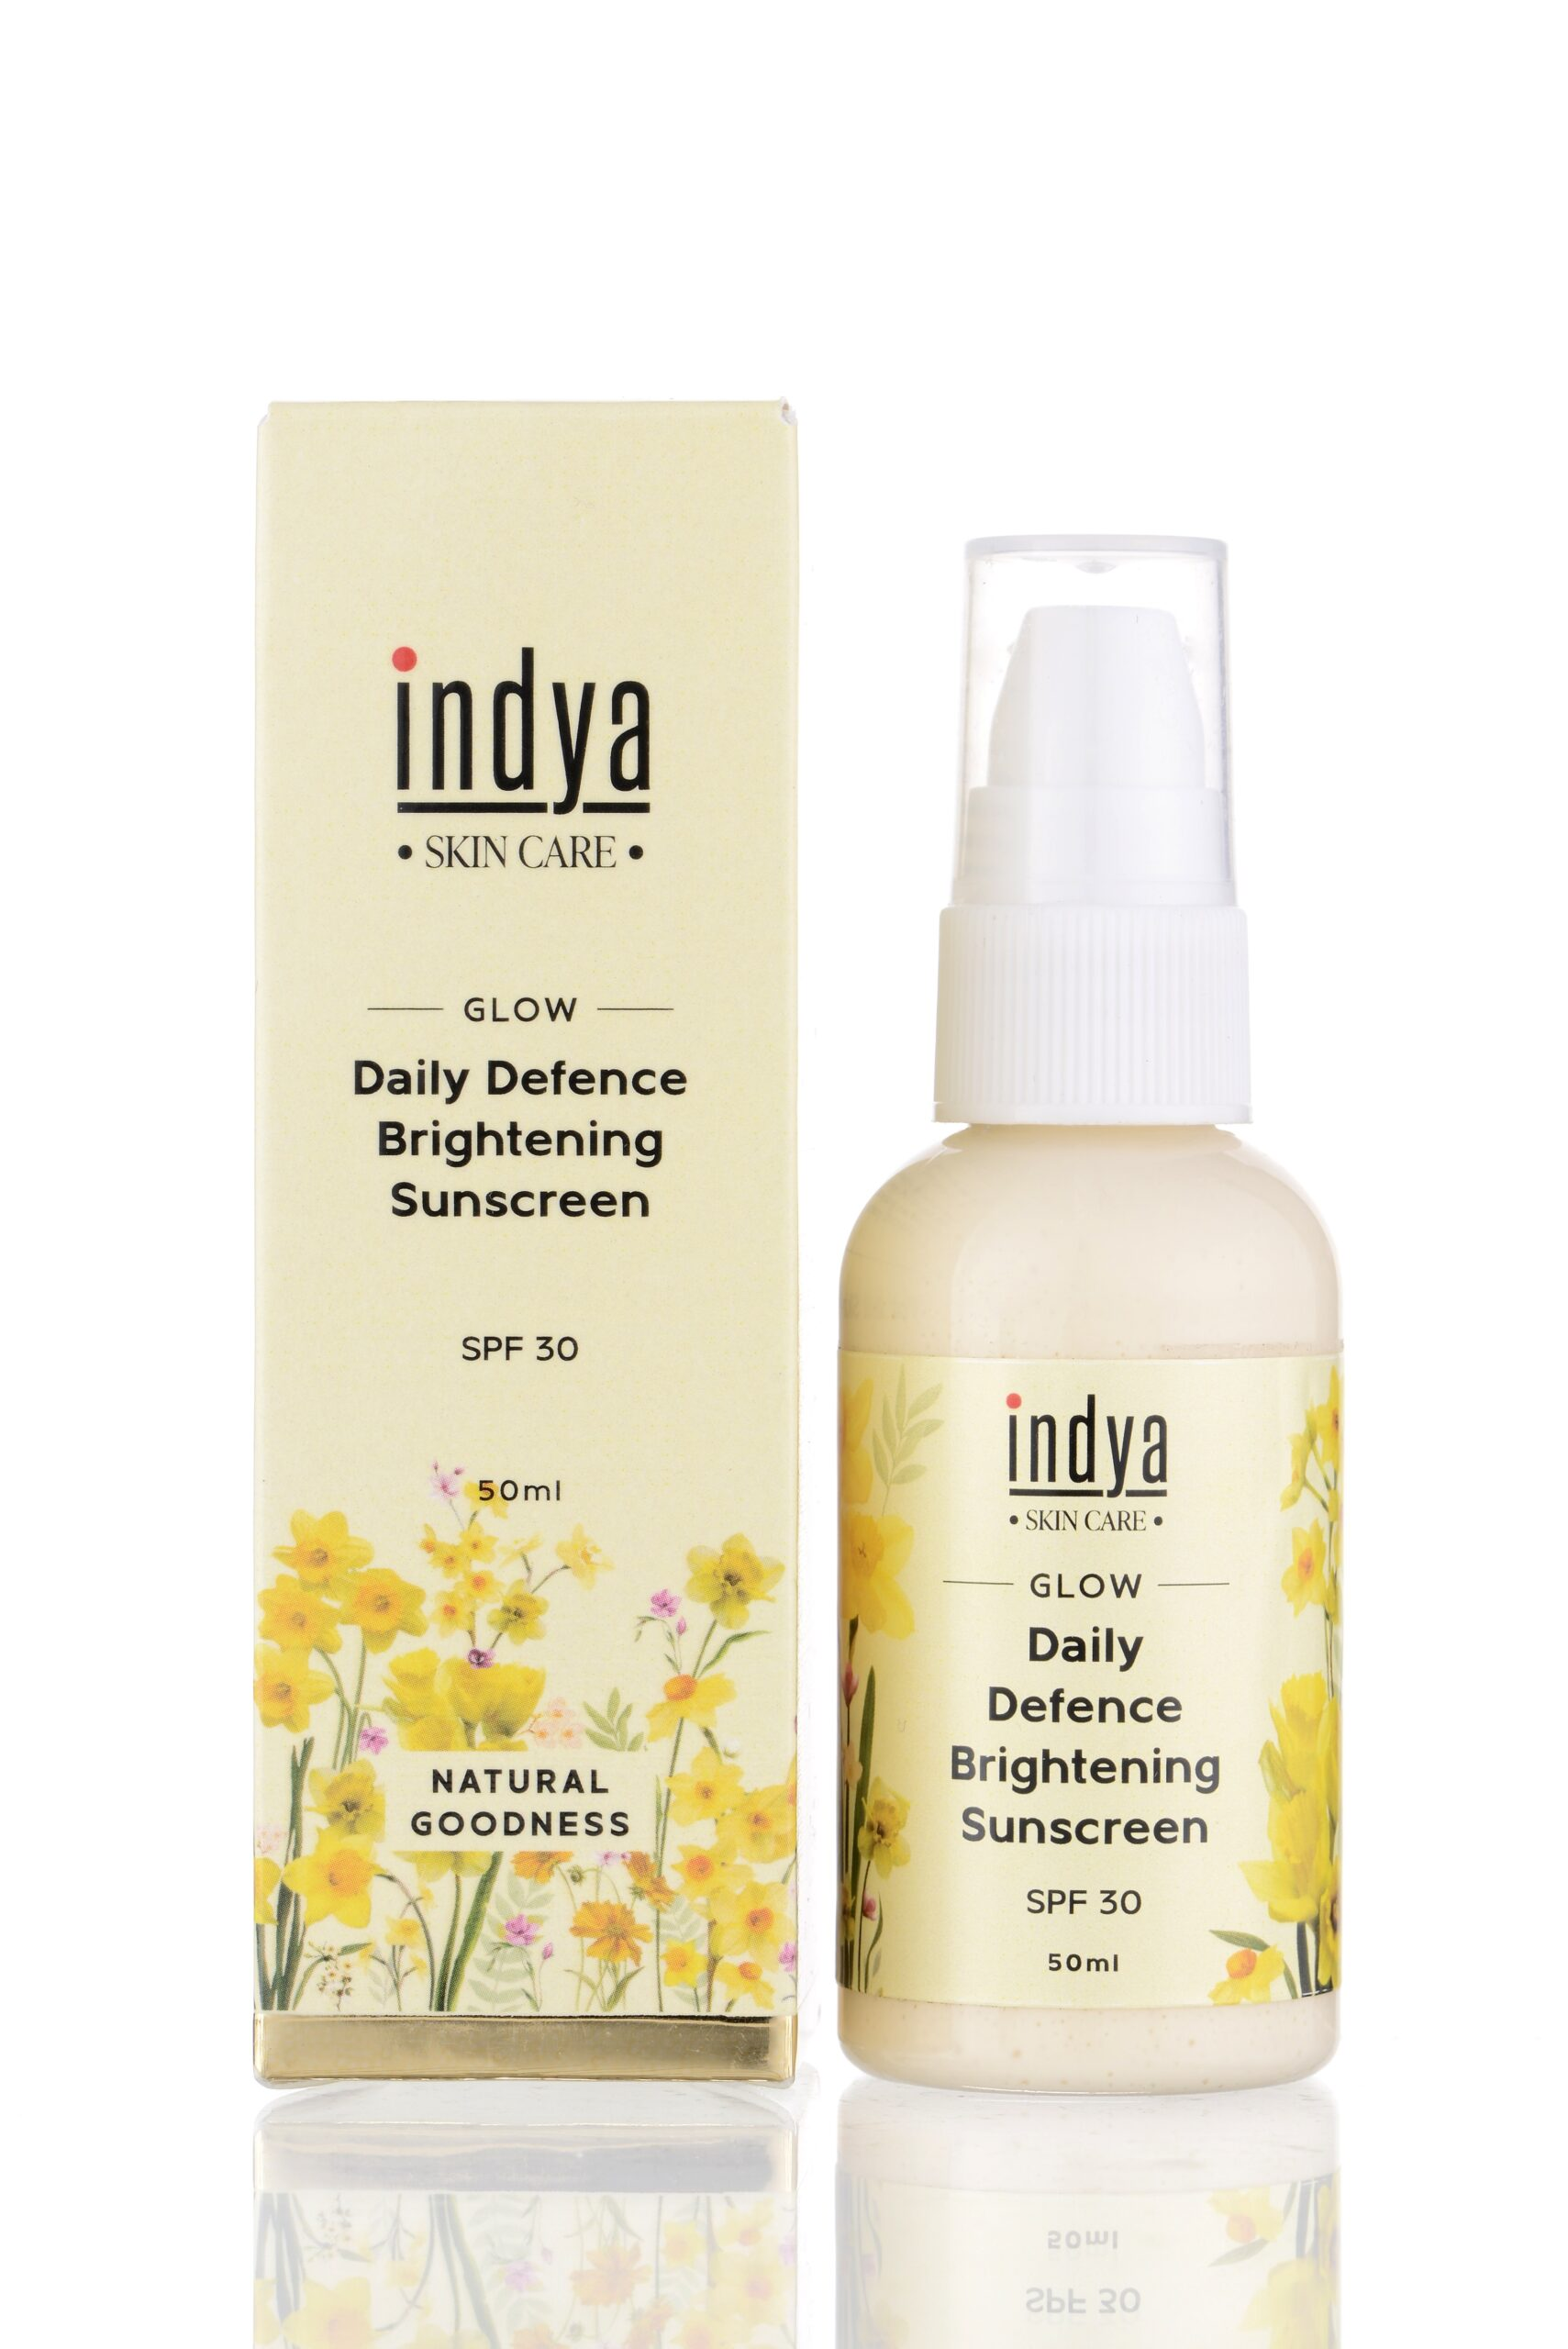 8 Skin Care Essentials To Beat The Summer Blues - Indya